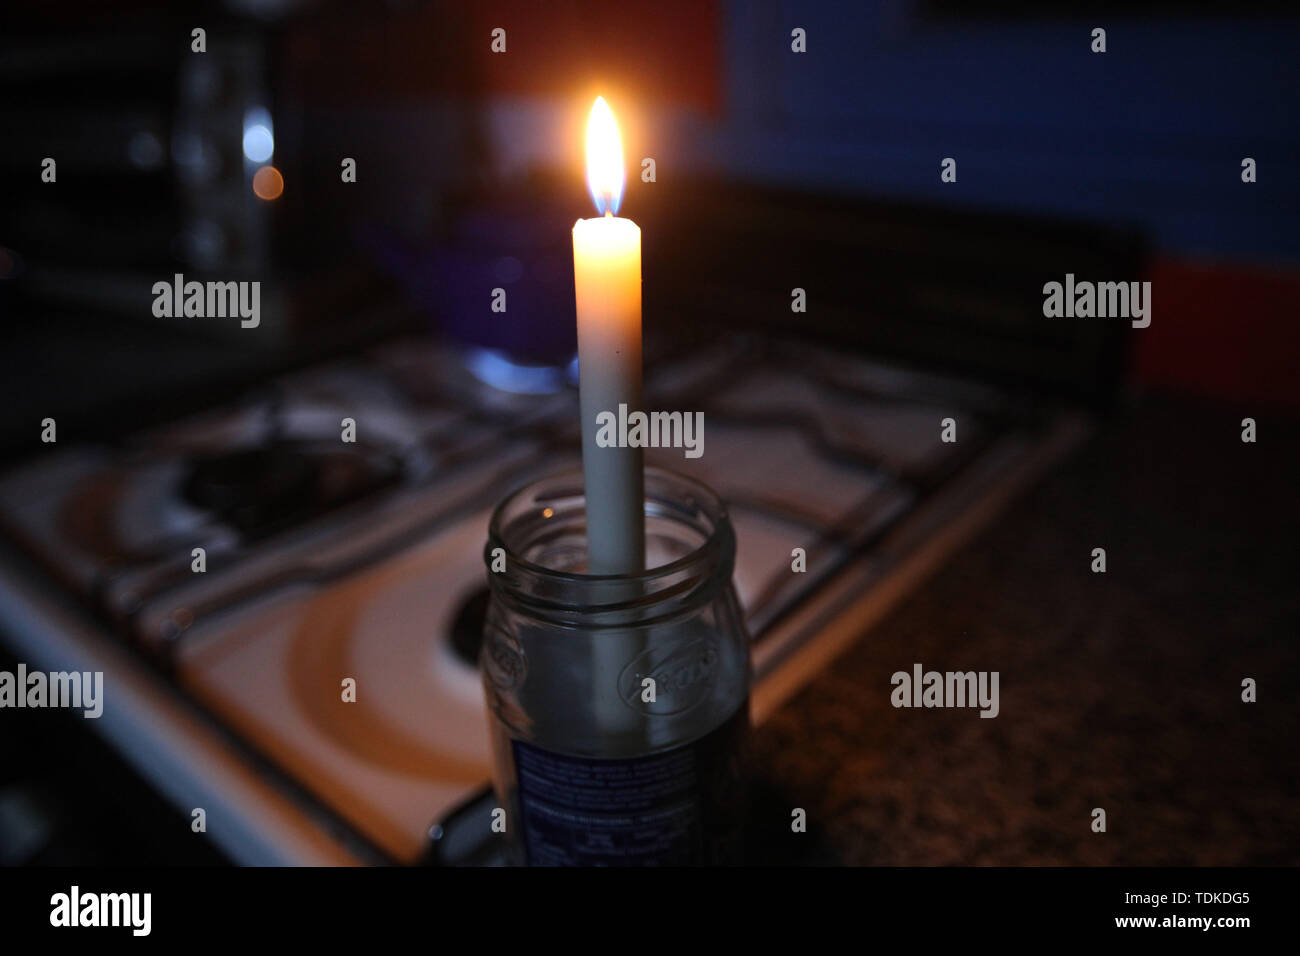 Buenos Aires, Buenos Aires, Argentina. 16th June, 2019. A blackout stripped all of mainland Argentina and Uruguay of power early Sunday, affecting tens of millions of people in an electrical failure that officials called unprecedented in its scope. Credit: Claudio Santisteban/ZUMA Wire/Alamy Live News - Stock Image